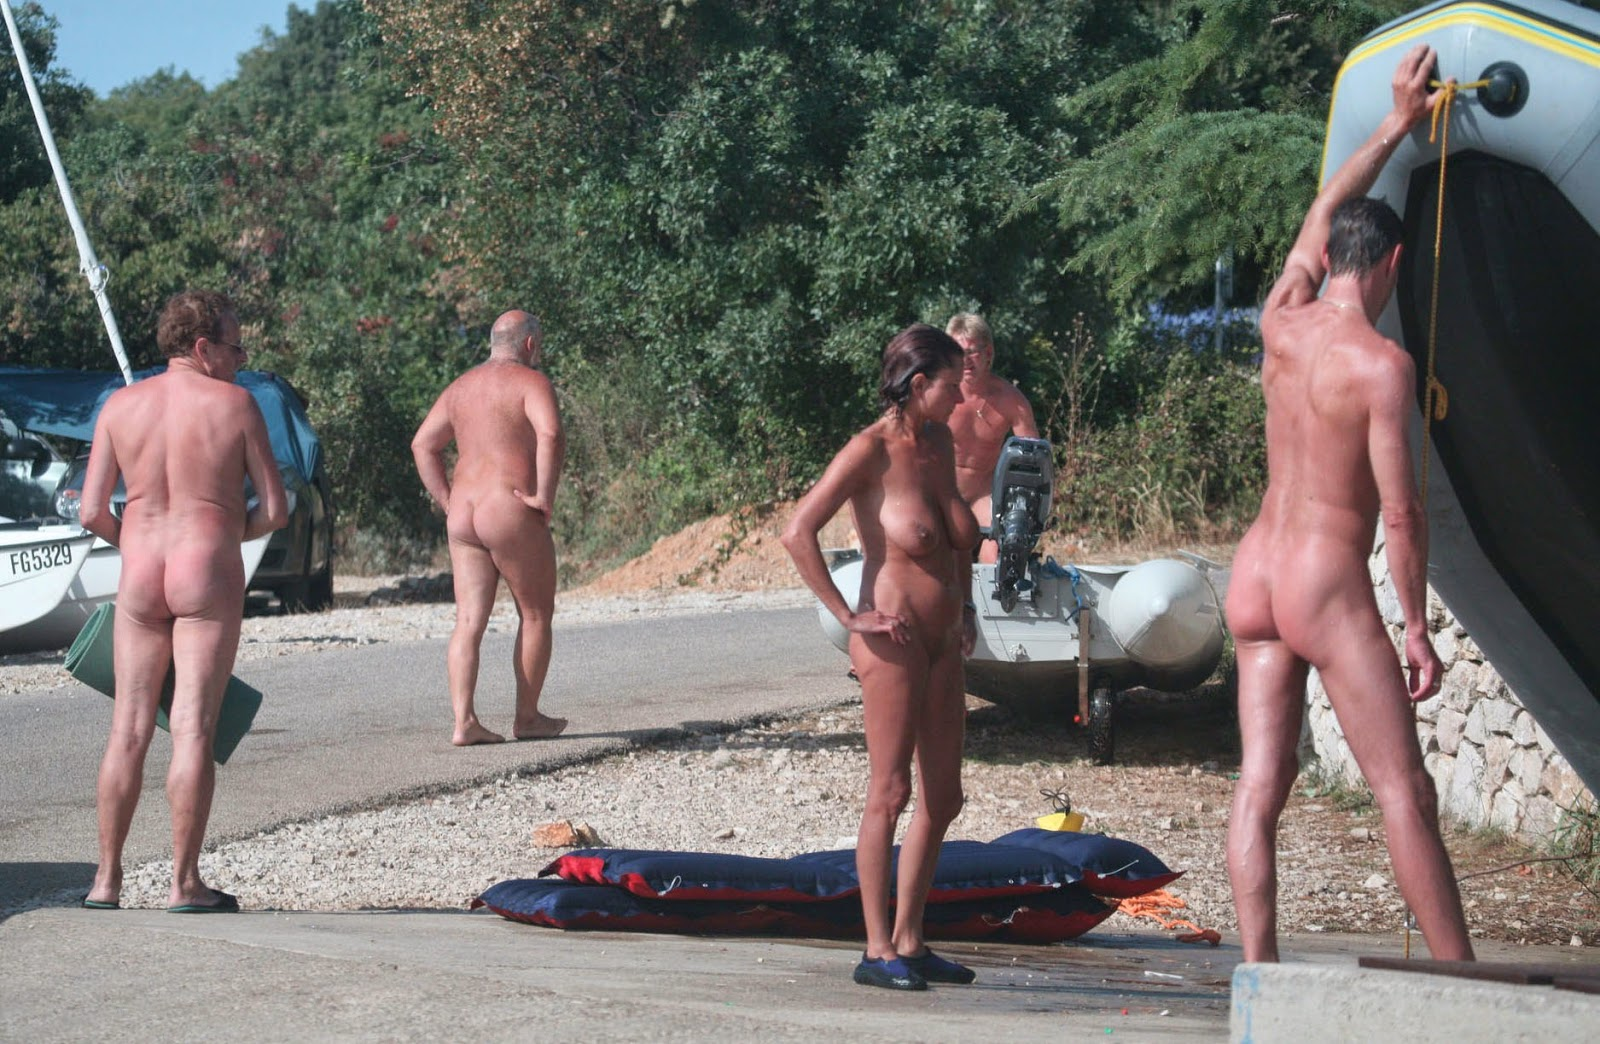 Hot. nudist camp photo she never